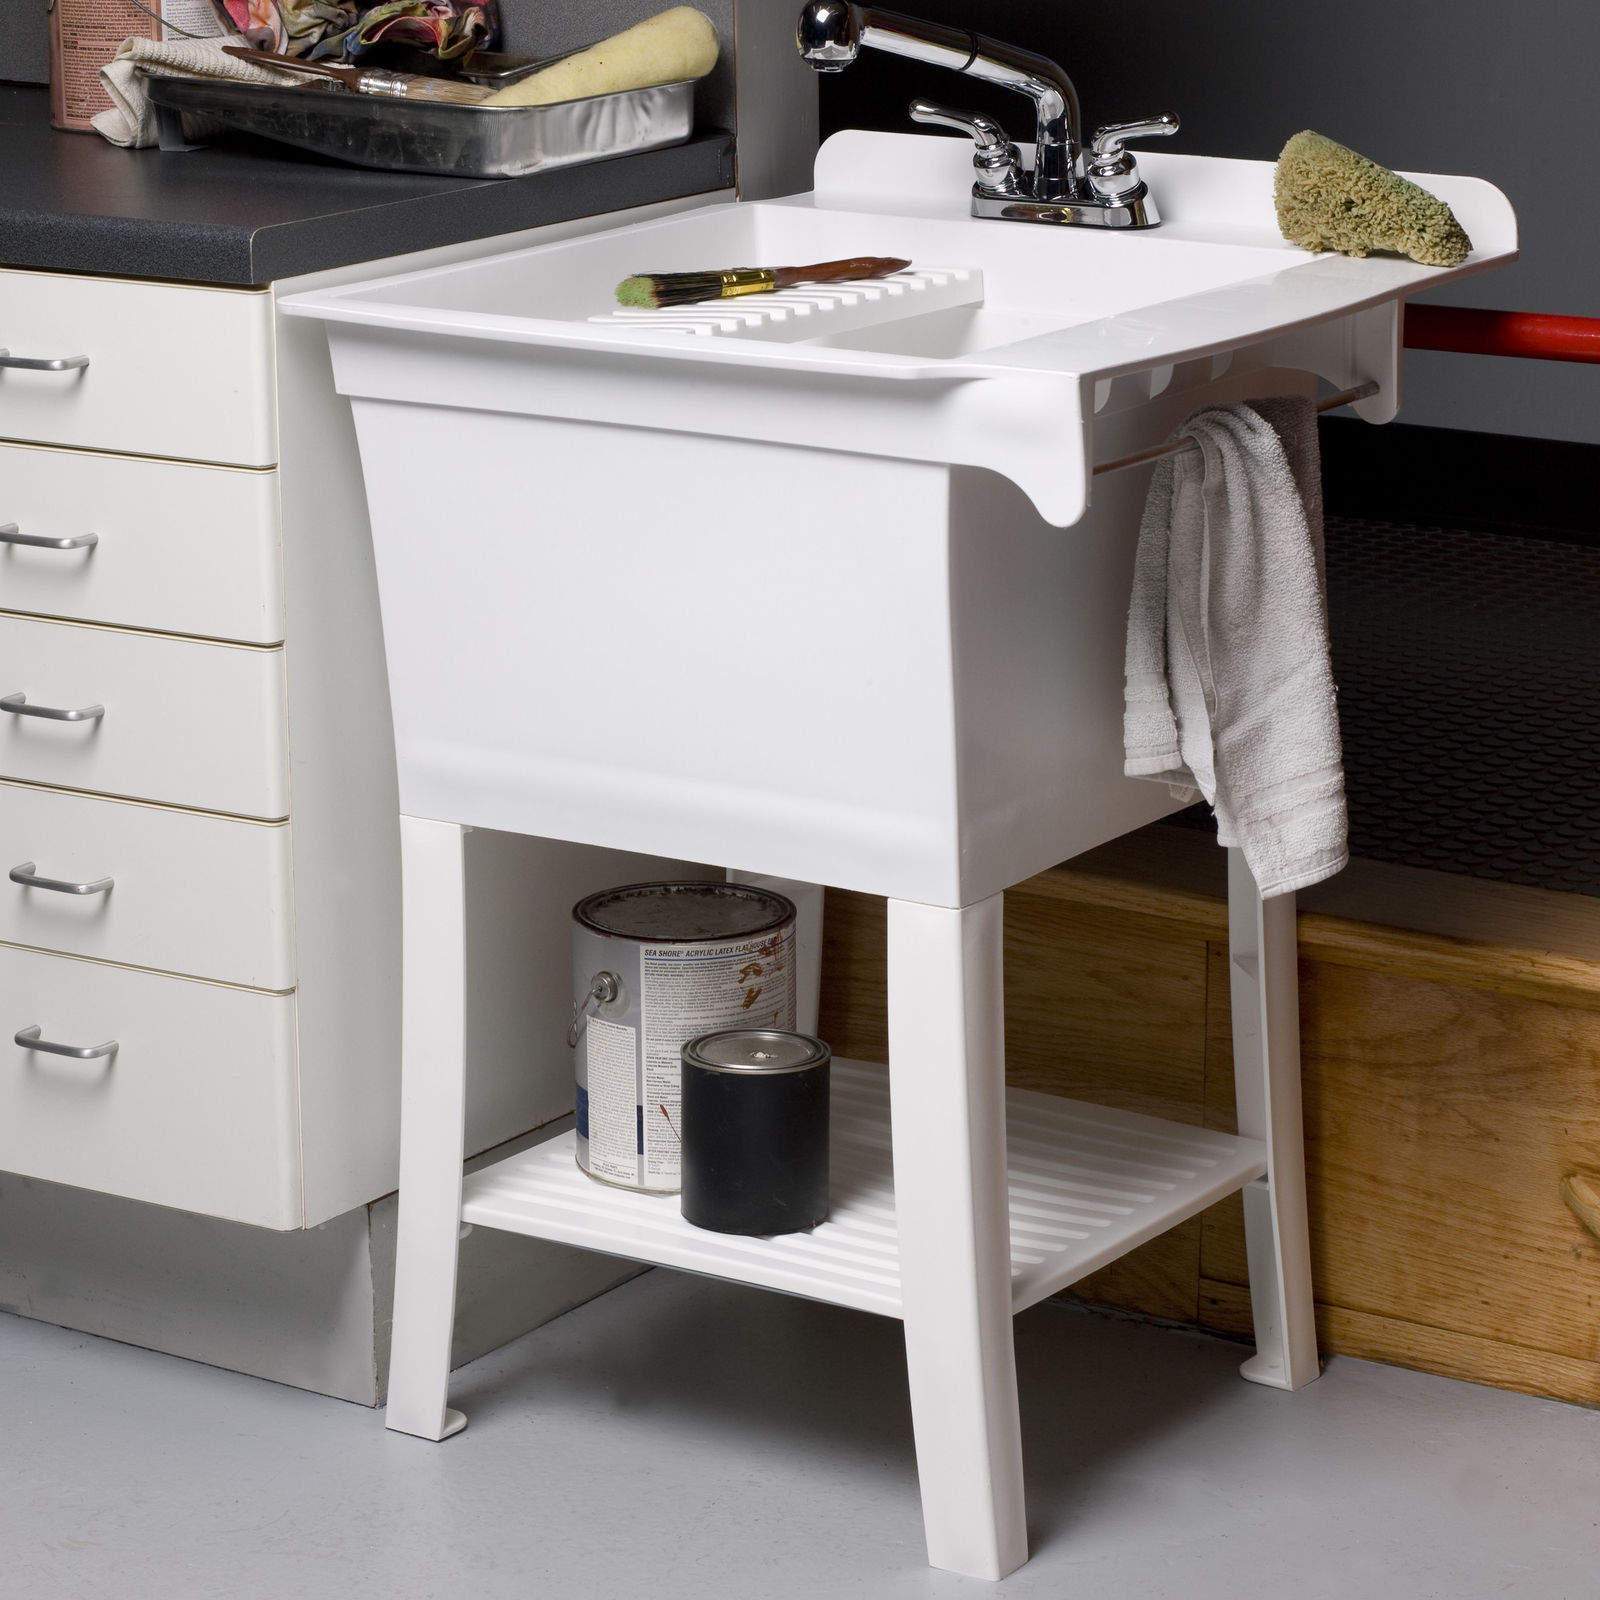 """Cashel Maddox Workstation 24.38"""" x 25.75"""" Freestanding Laundry Sink with Faucet"""